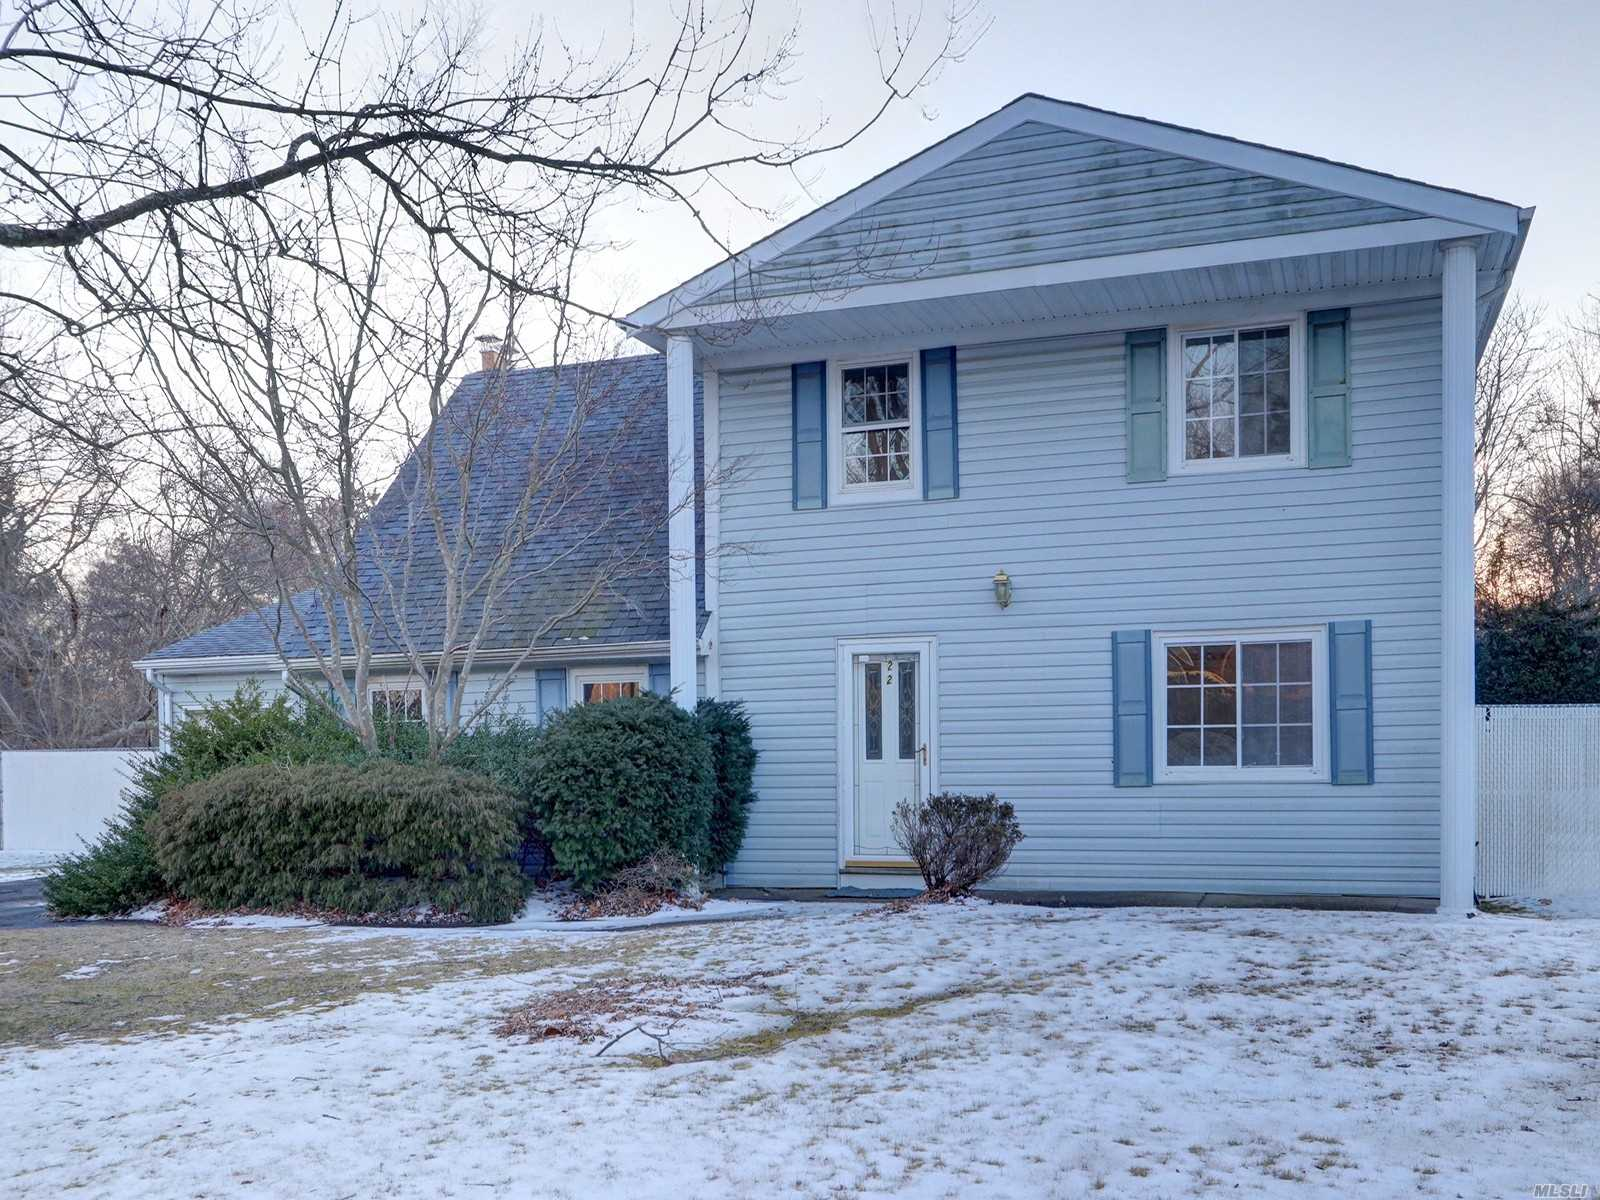 Oversized Property On Beautiful Tree Lined Street, Quiet And Private Cul-De-Sac. This Home Features 2 Warm Cozy Fireplaces With Large Eat In Kitchen And Formal Dining Room. Perfect Home To Relax And Entertain. Large Home With Fresh New Carpeting In Bedrooms. Brand New Heating System.